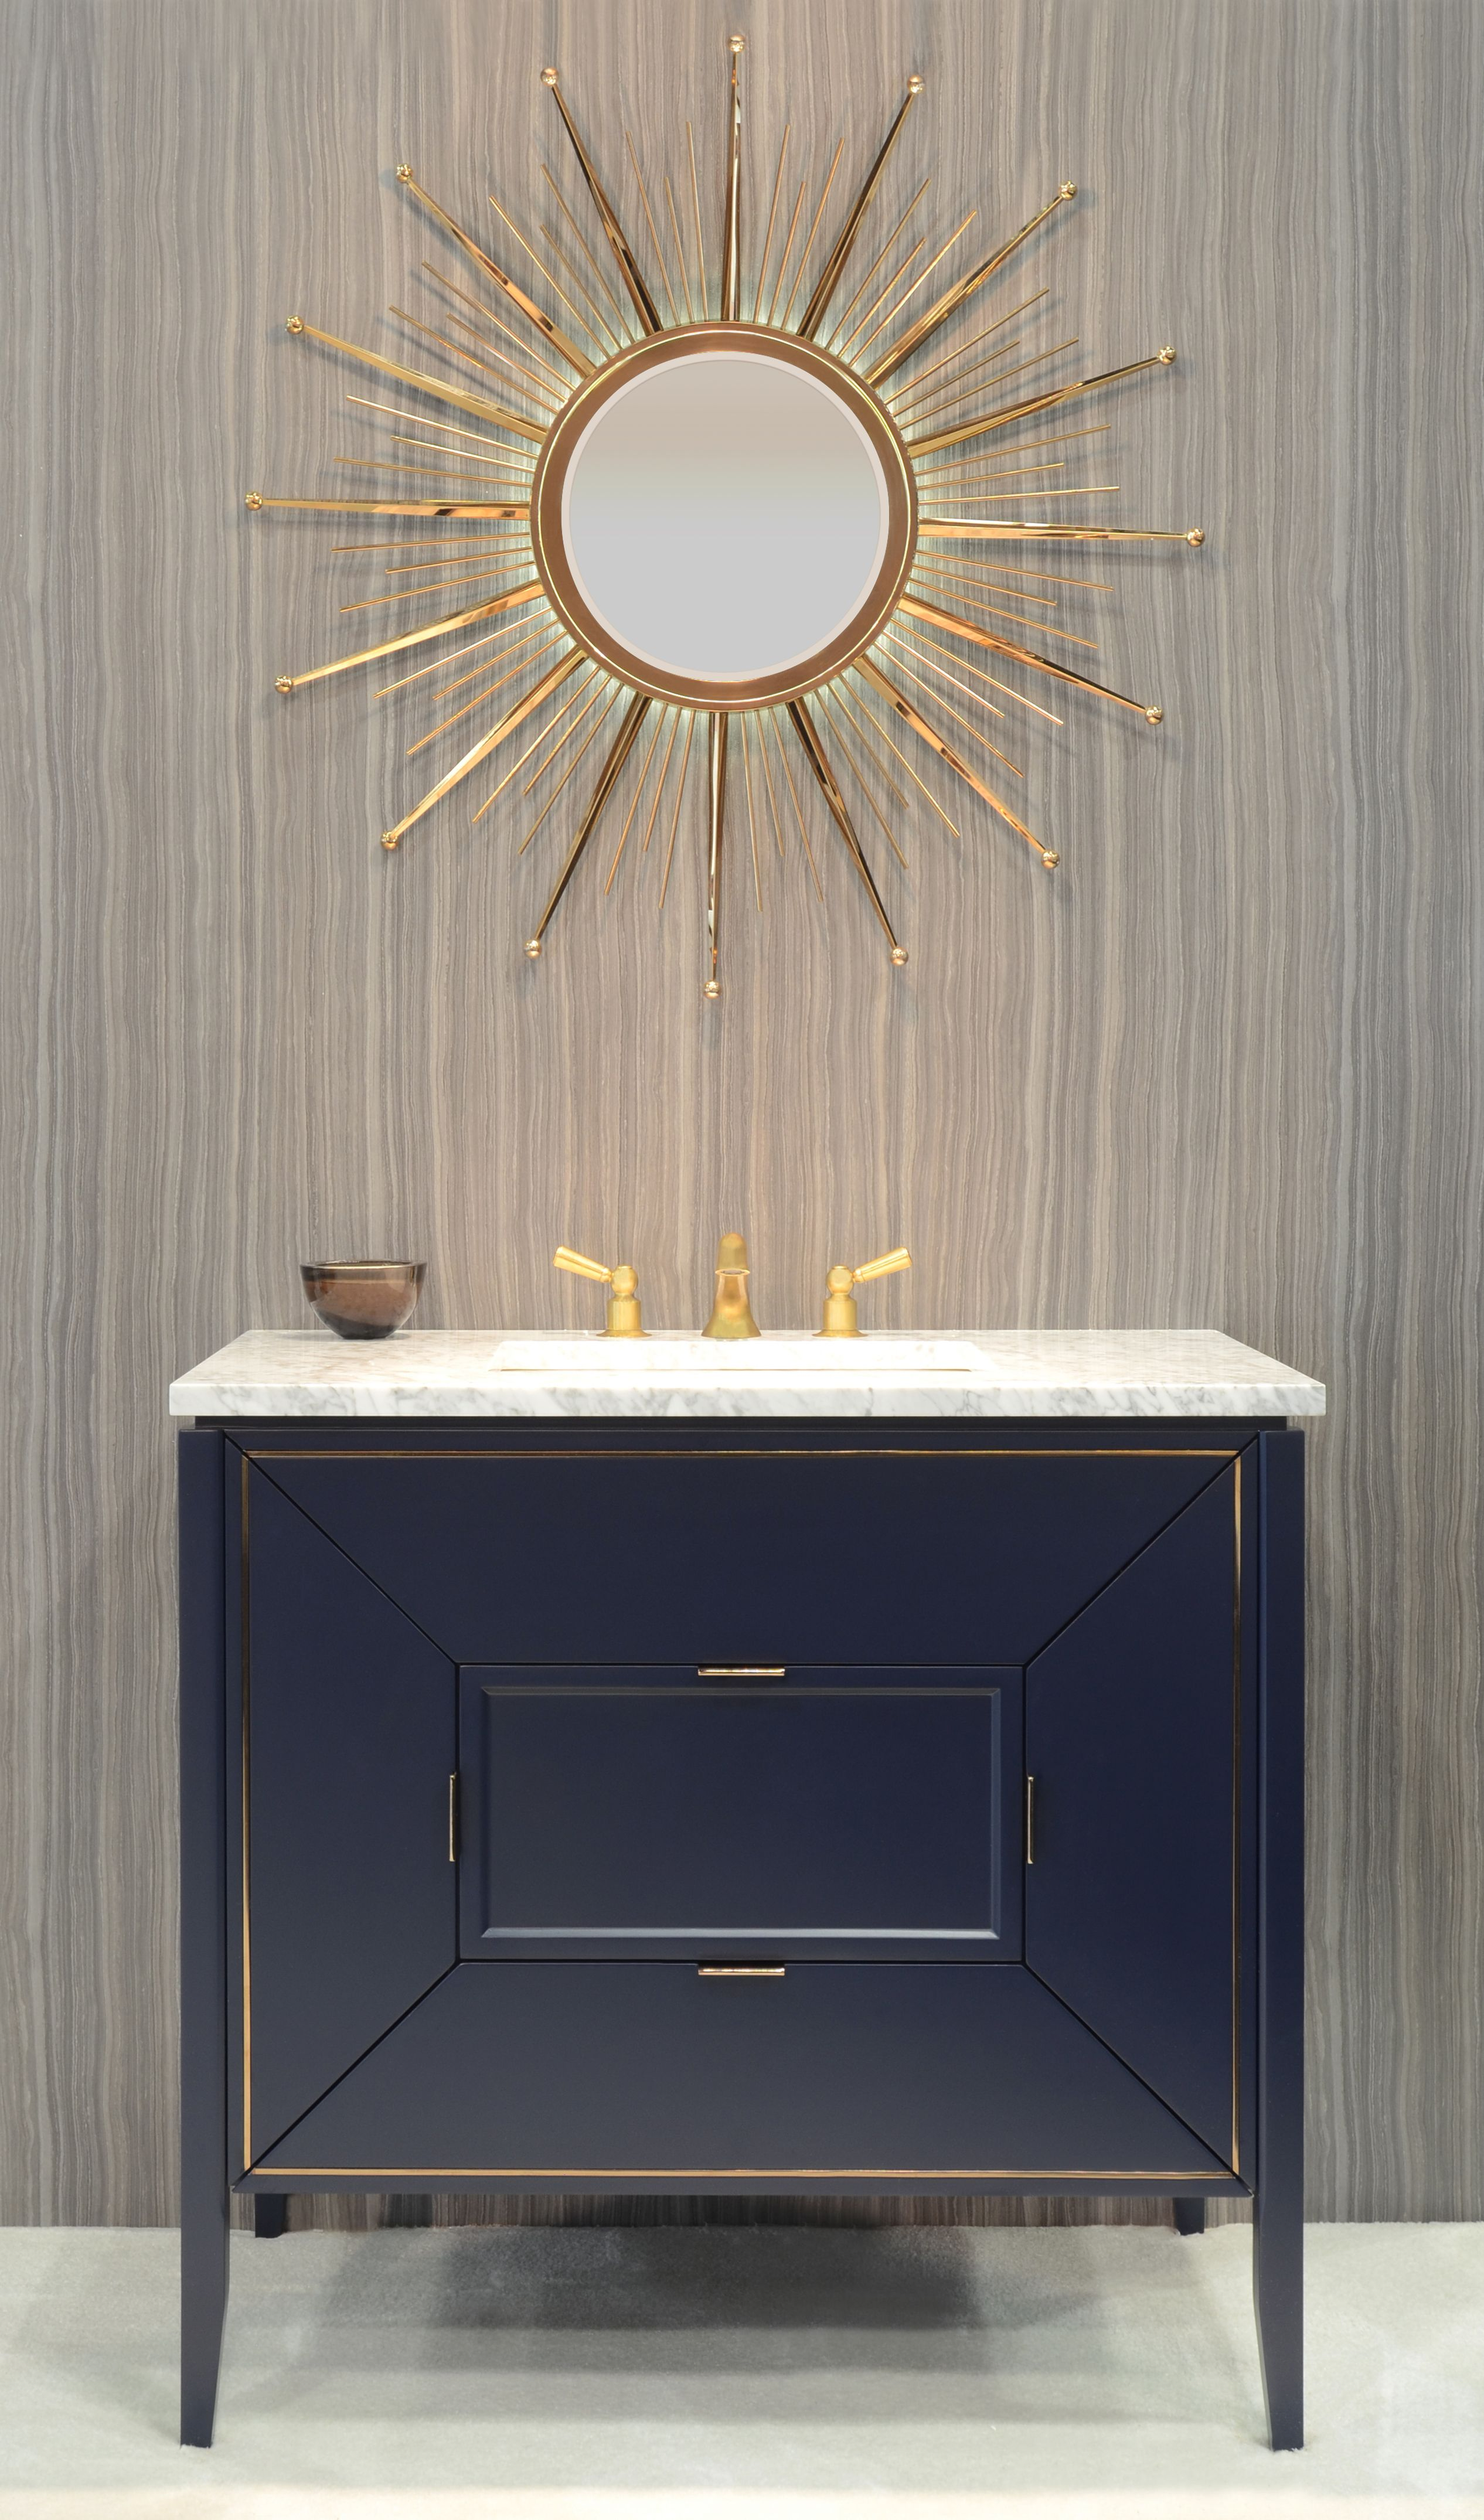 Lovely Amora Vanity By Ronbow (navy W/ Gold Inlay). Tamalpais Faucet. Aliso Images